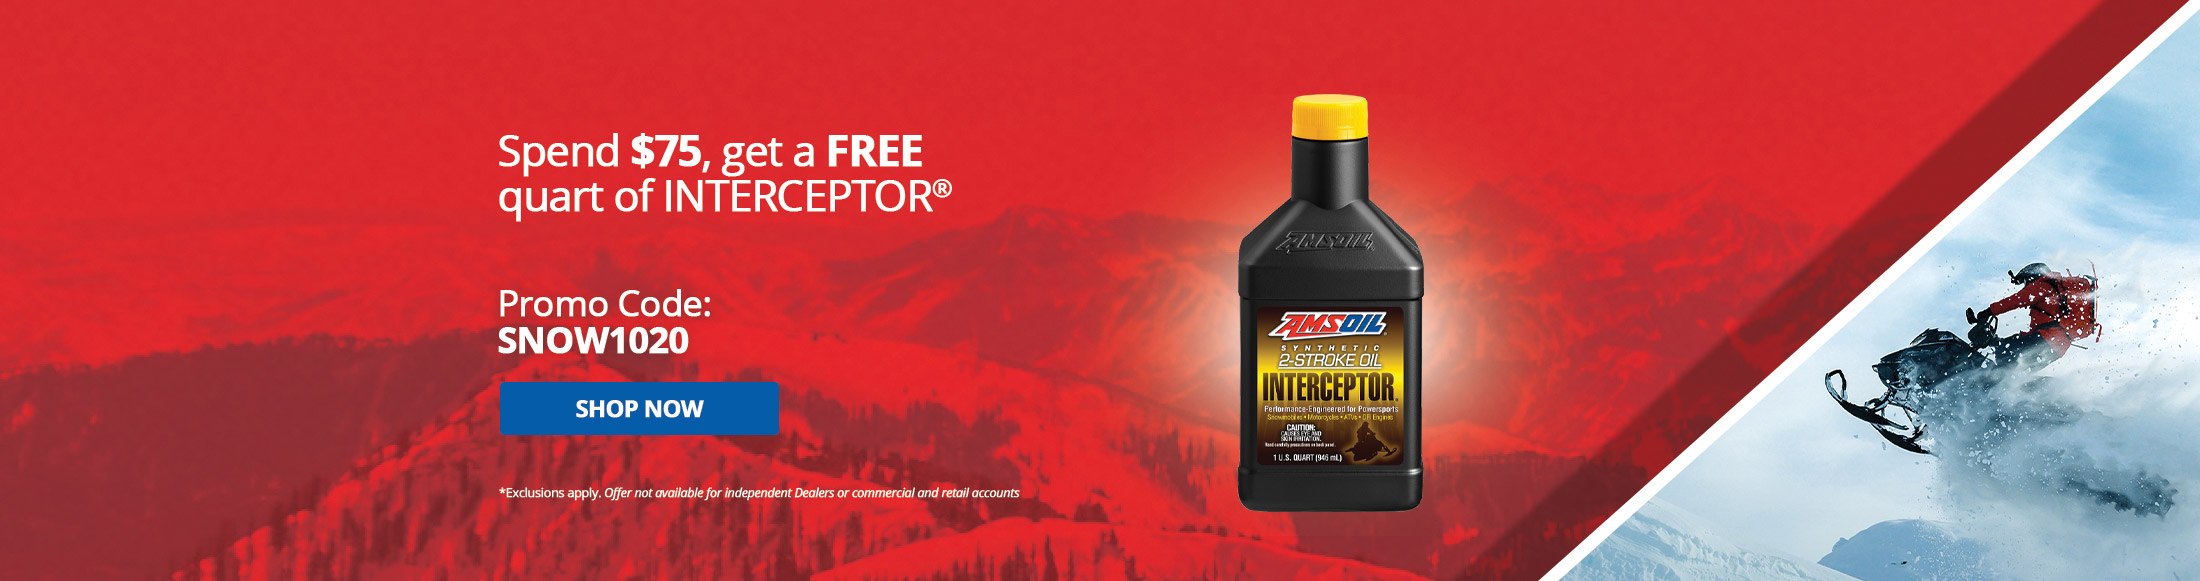 Spend $75 Get a Free Quart of Interceptor